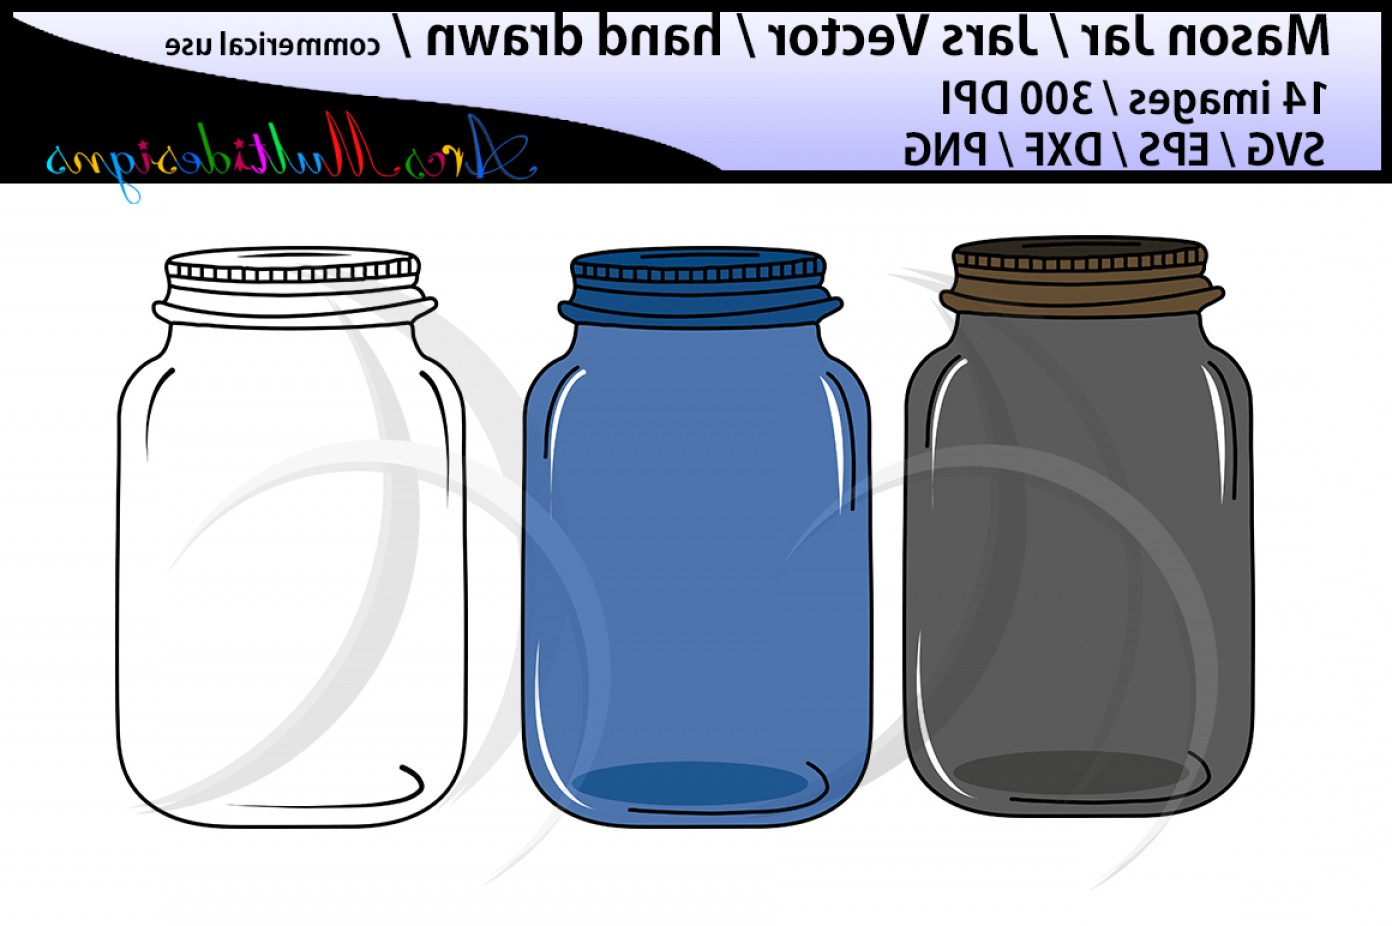 Mason Jar Outline Vector: Mason Jar Clipart Set Hand Drawn Mason Jar Clipart Mason Jar Svg Eps Dxf Png Mason Jar Silhouette Commercial And Personal Use Vector